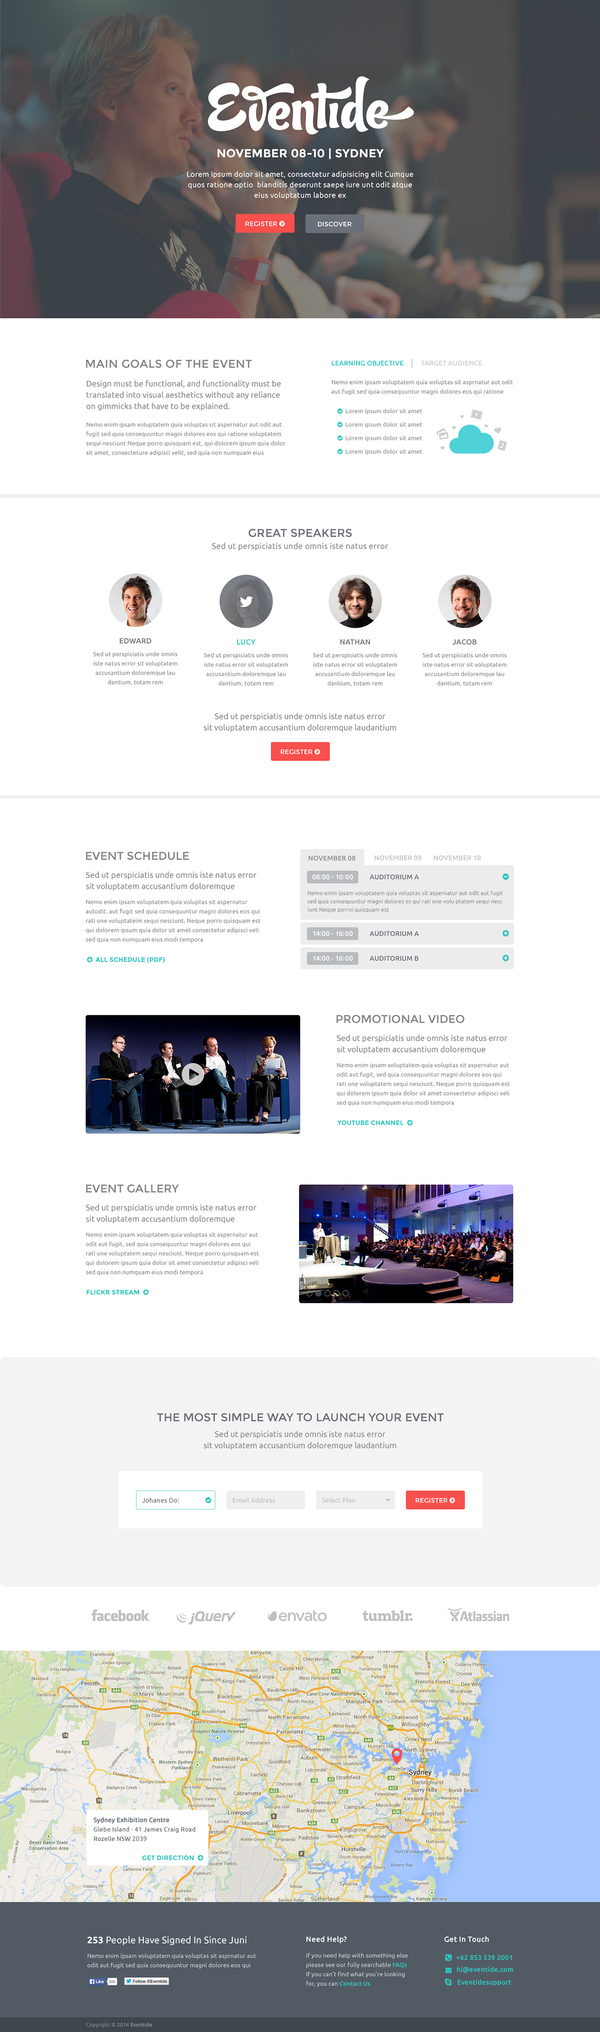 Eventide - Free Event Landing Page | Free PSD Templates | Pinterest ...